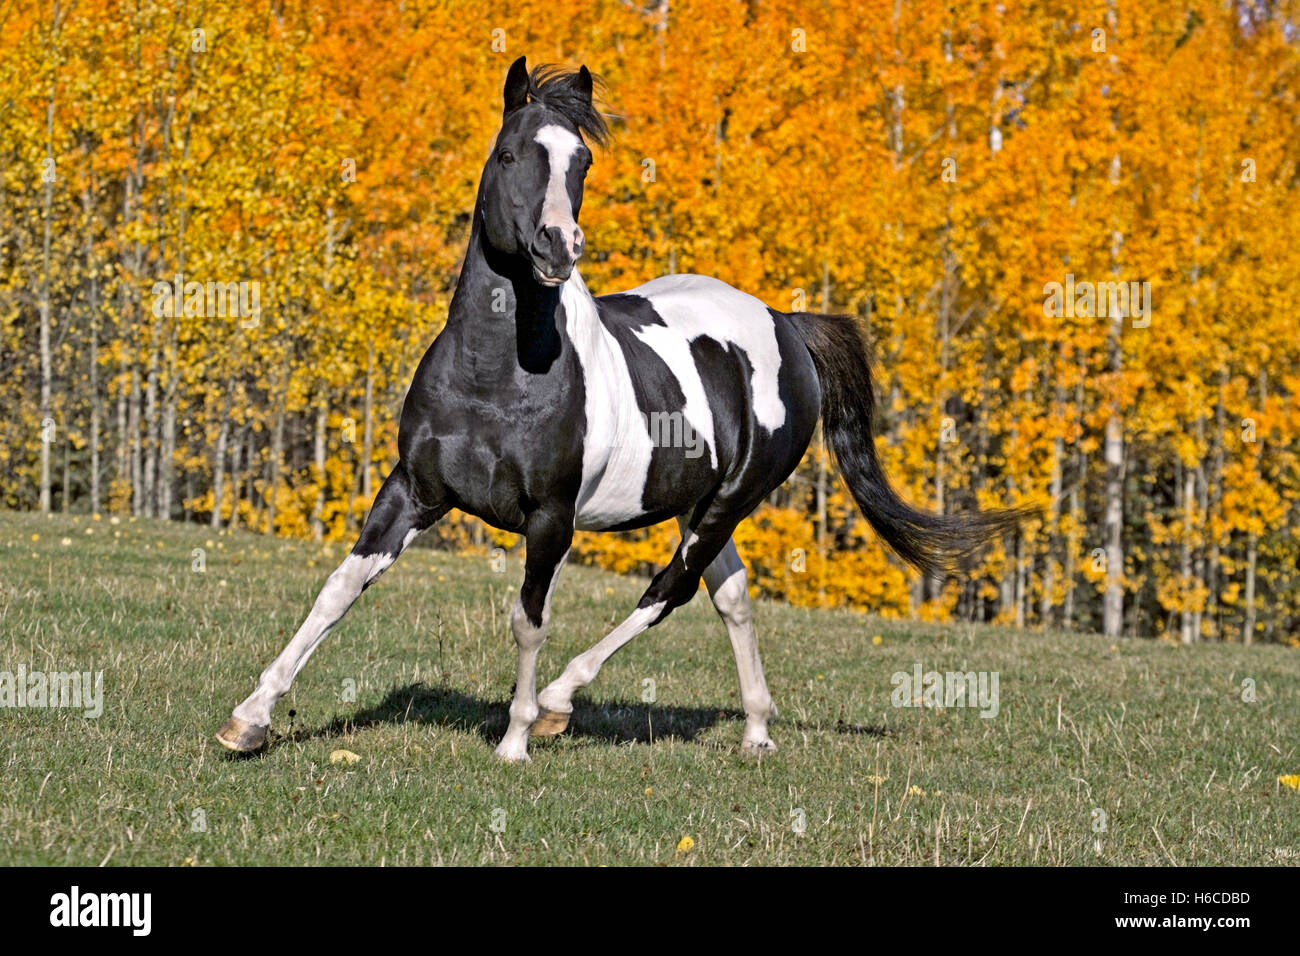 Tobiano Pinto Stallion trotting in meadow in front of Aspen trees in autumn colors - Stock Image